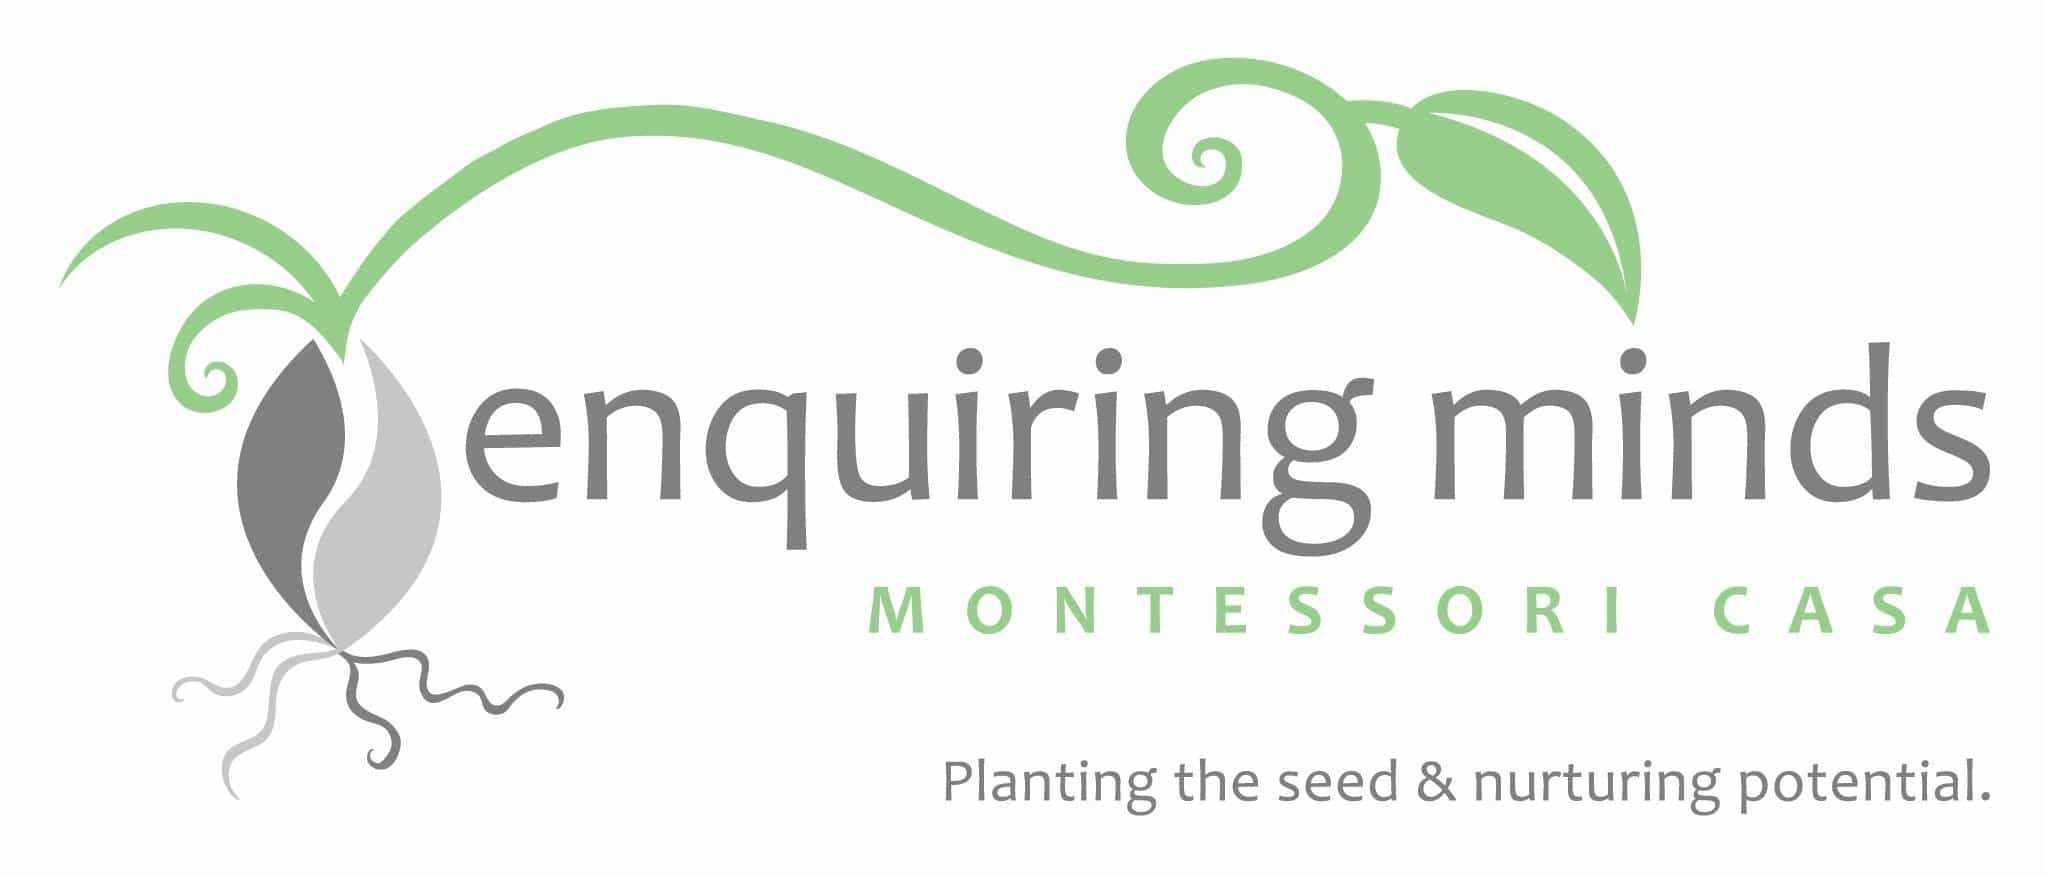 Enquiring Minds Montessori Casa